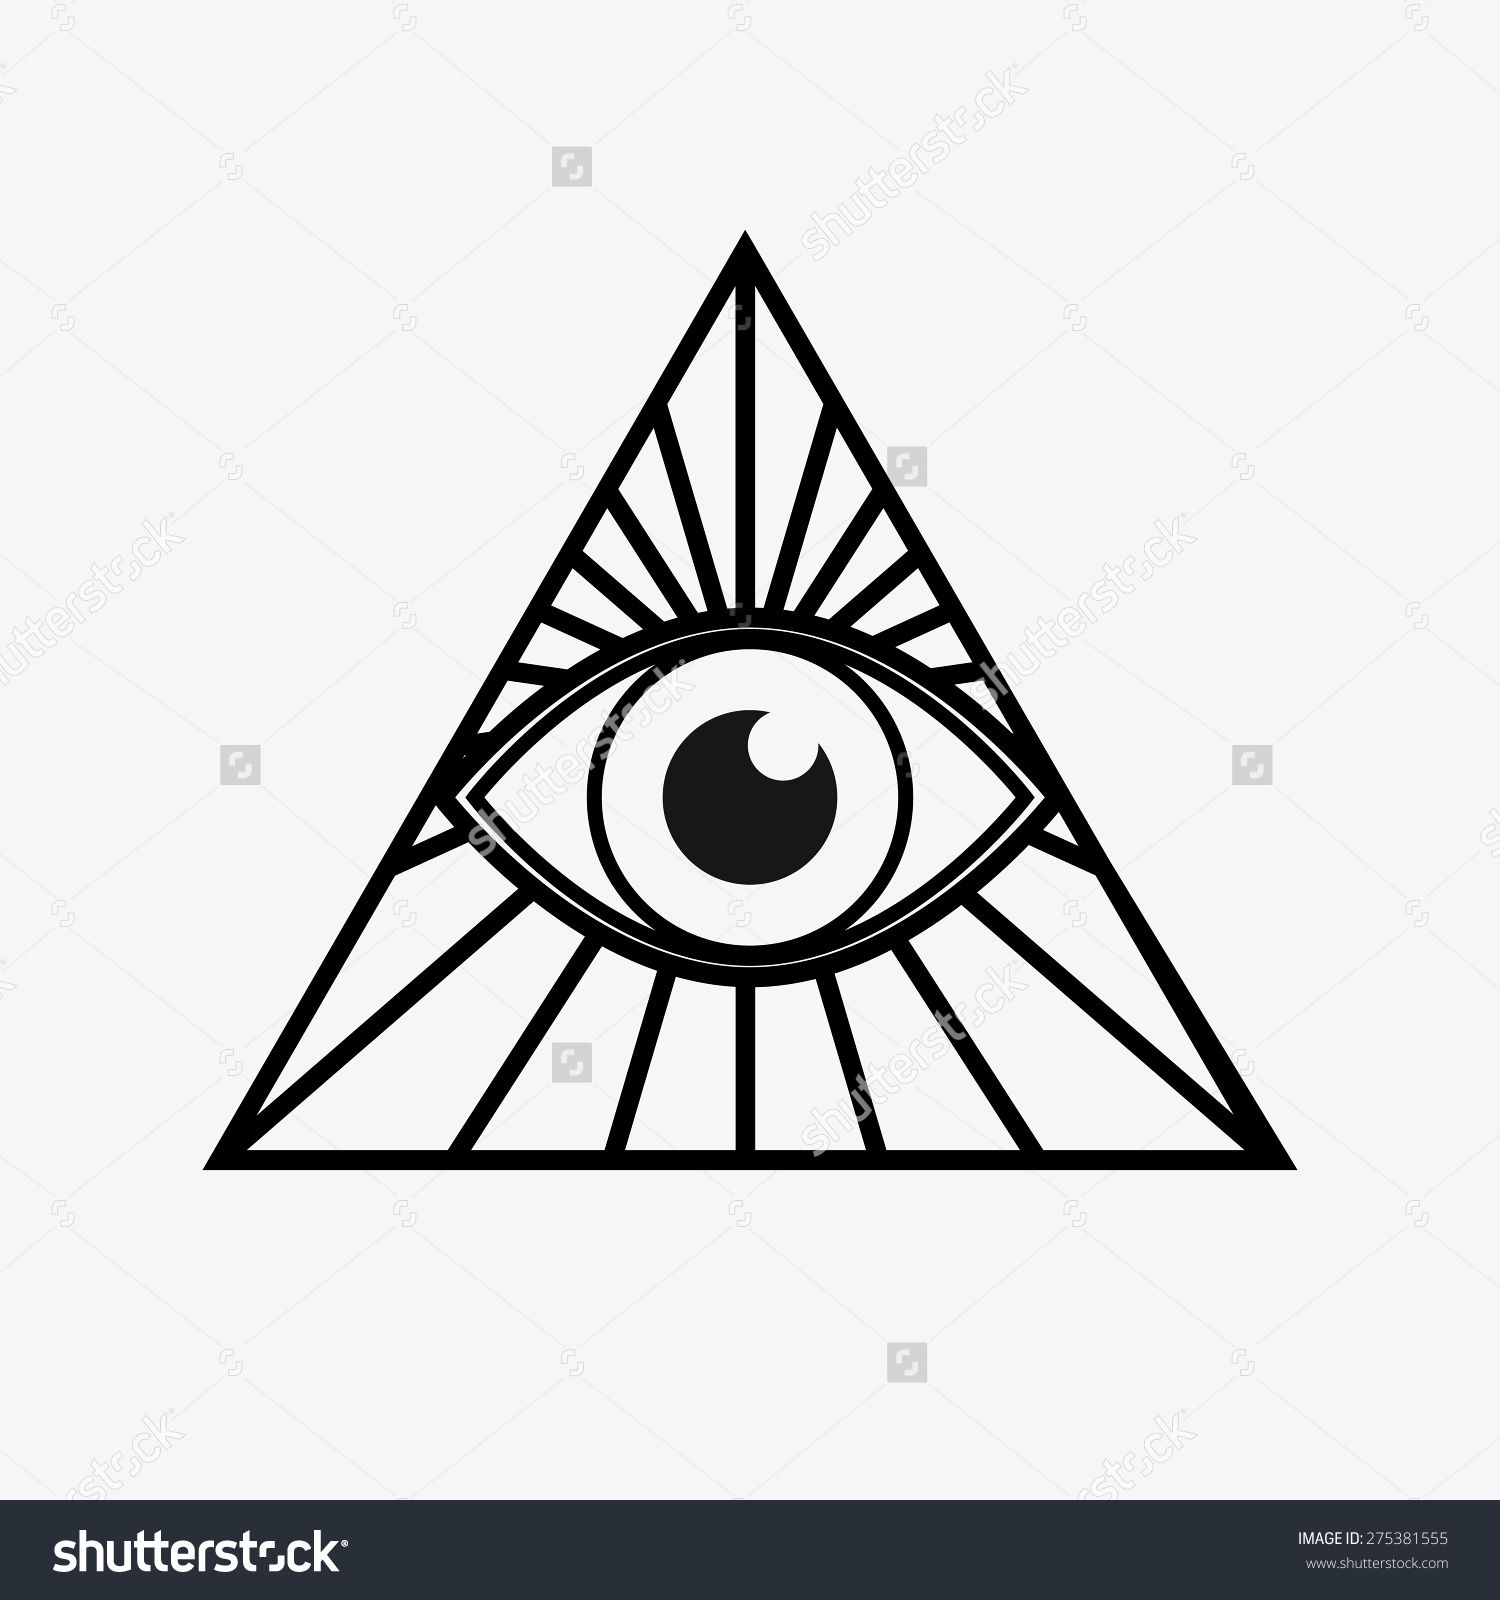 Image result for eye triangle Tattoos Pinterest